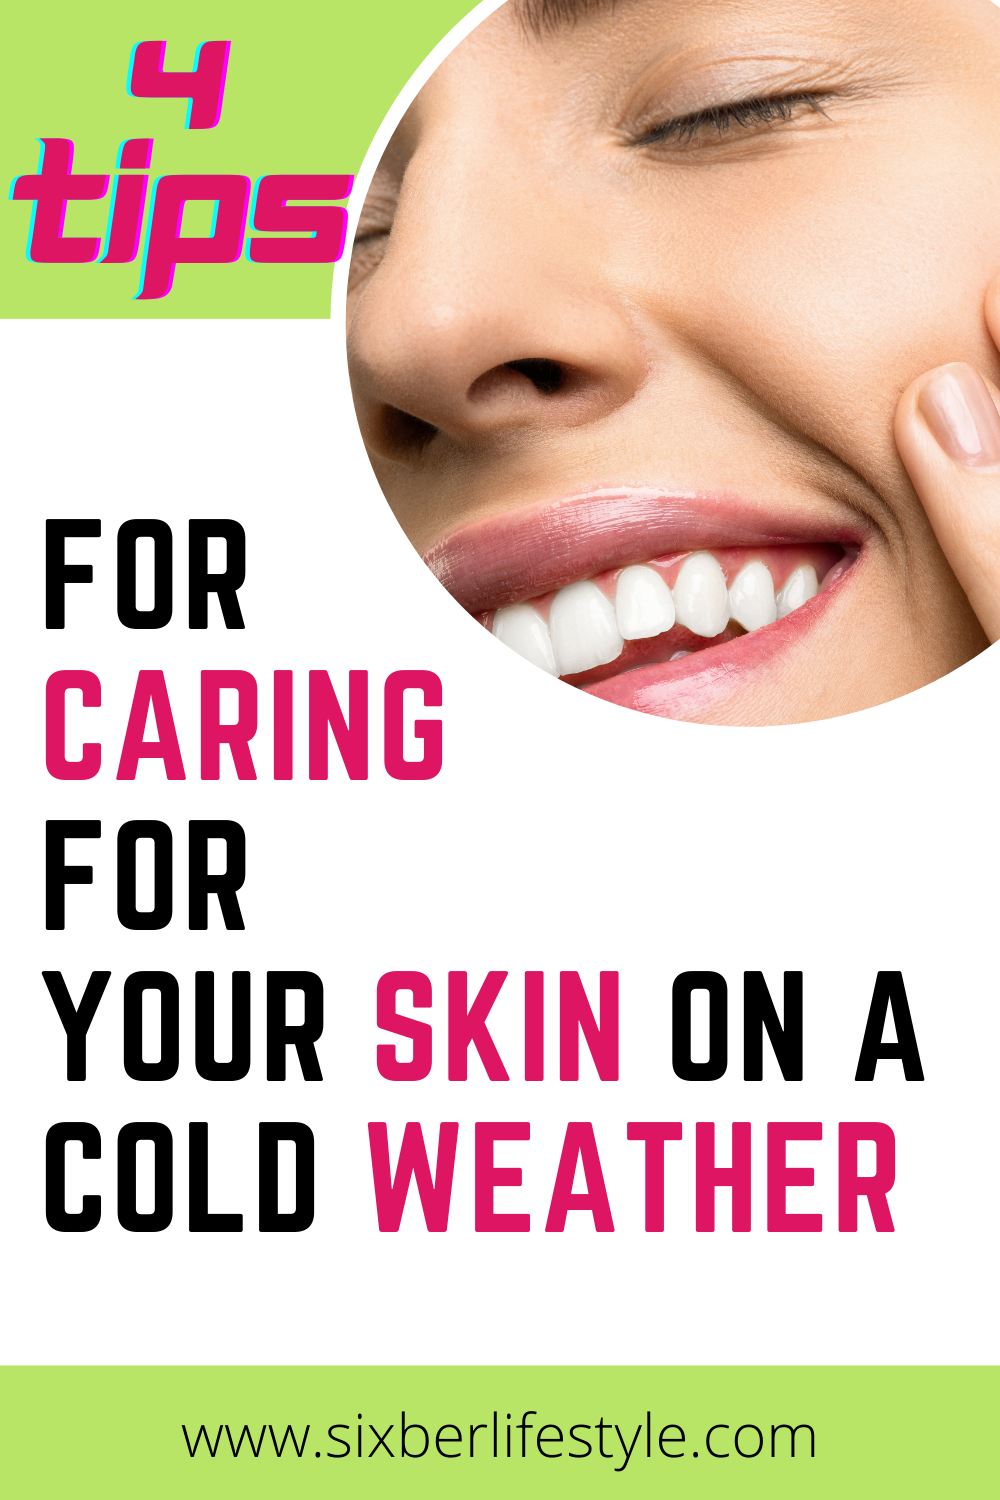 Top 4 Tips For Caring For Your Skin On A Cold Weather In 2020 Skin Types Dry Skin Treatment Skin